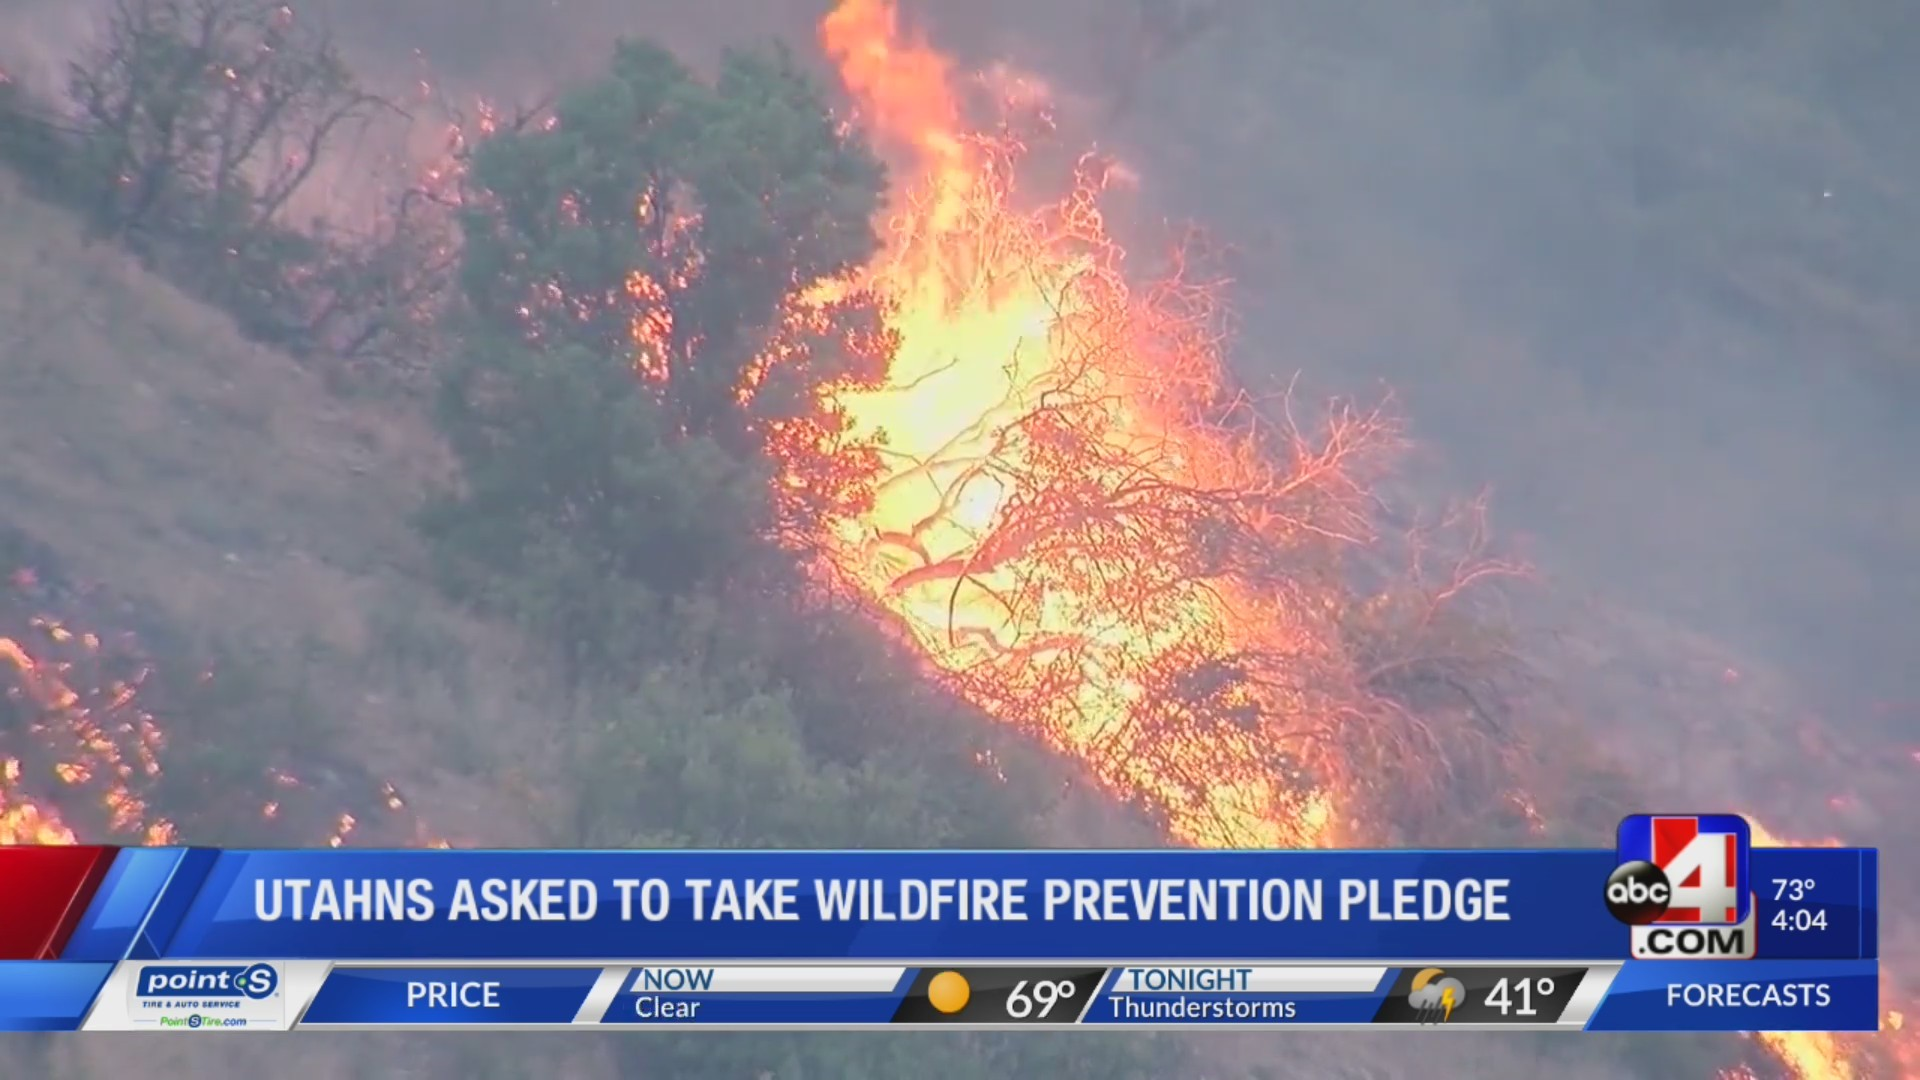 Pledging to prevent Wildfires